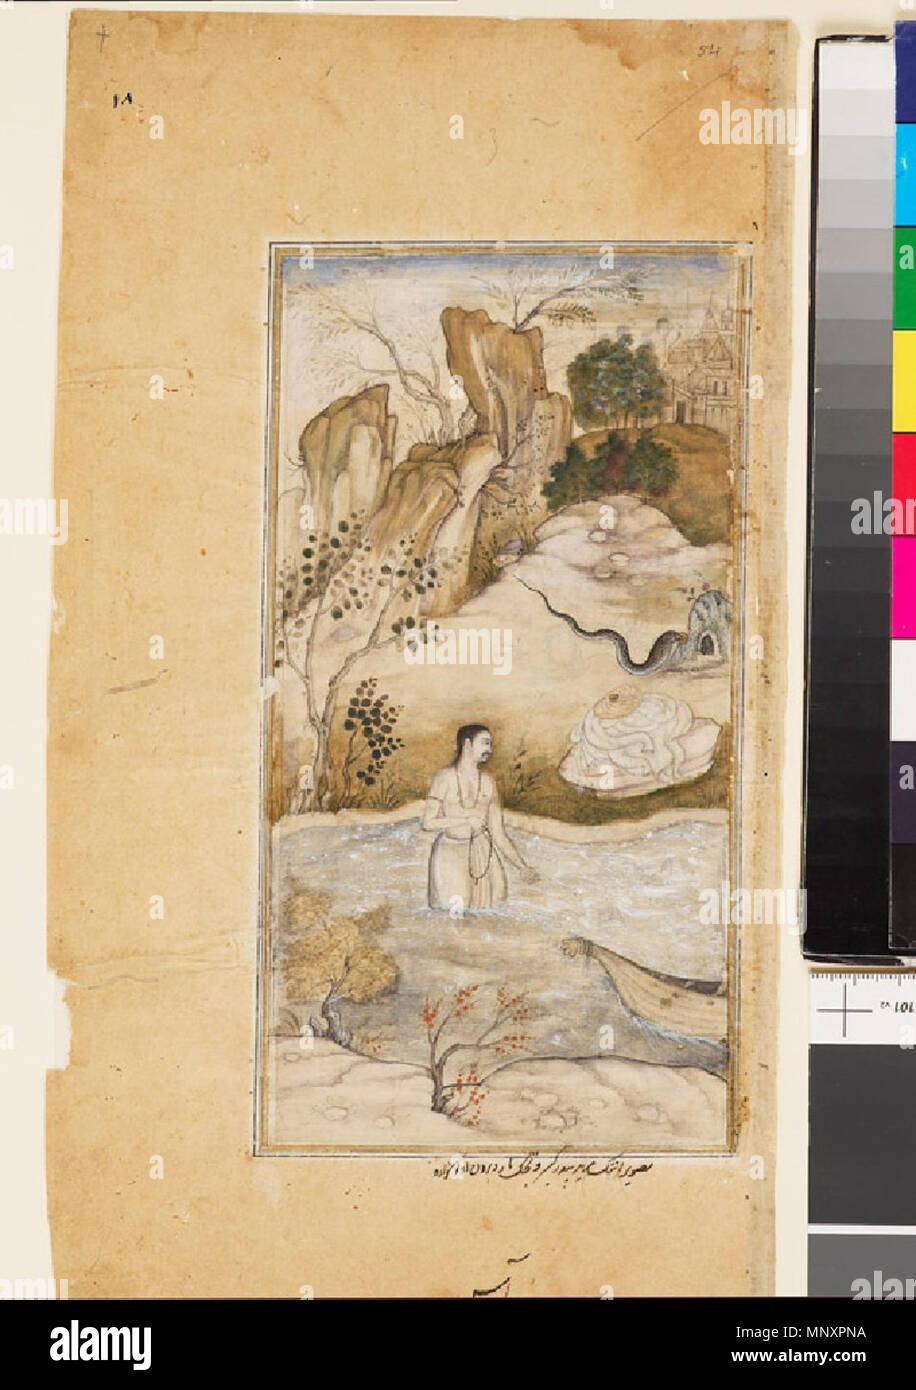 . English: Associated place  north India   (place of creation) Date  1598  Mughal Period (1526 - 1858)  Artist/maker  Asi (active late 16th century) Associated people  probably 'Abd ur-Rahim Khankhanan (1556 - 1626) (commissioner) Material and technique  gouache on paper Dimensions  mount 40.3 x 27.6 cm (height x width)  page 29.7 x 16 cm (height x width)  painting with border 20.2 x 10.8 cm (height x width)  painting without border 19.6 x 10 cm (height x width)  Material index  paper   Technique index  painted,  painted,  painted,  painted    Object type index  manuscript    No. of items  1 C - Stock Image